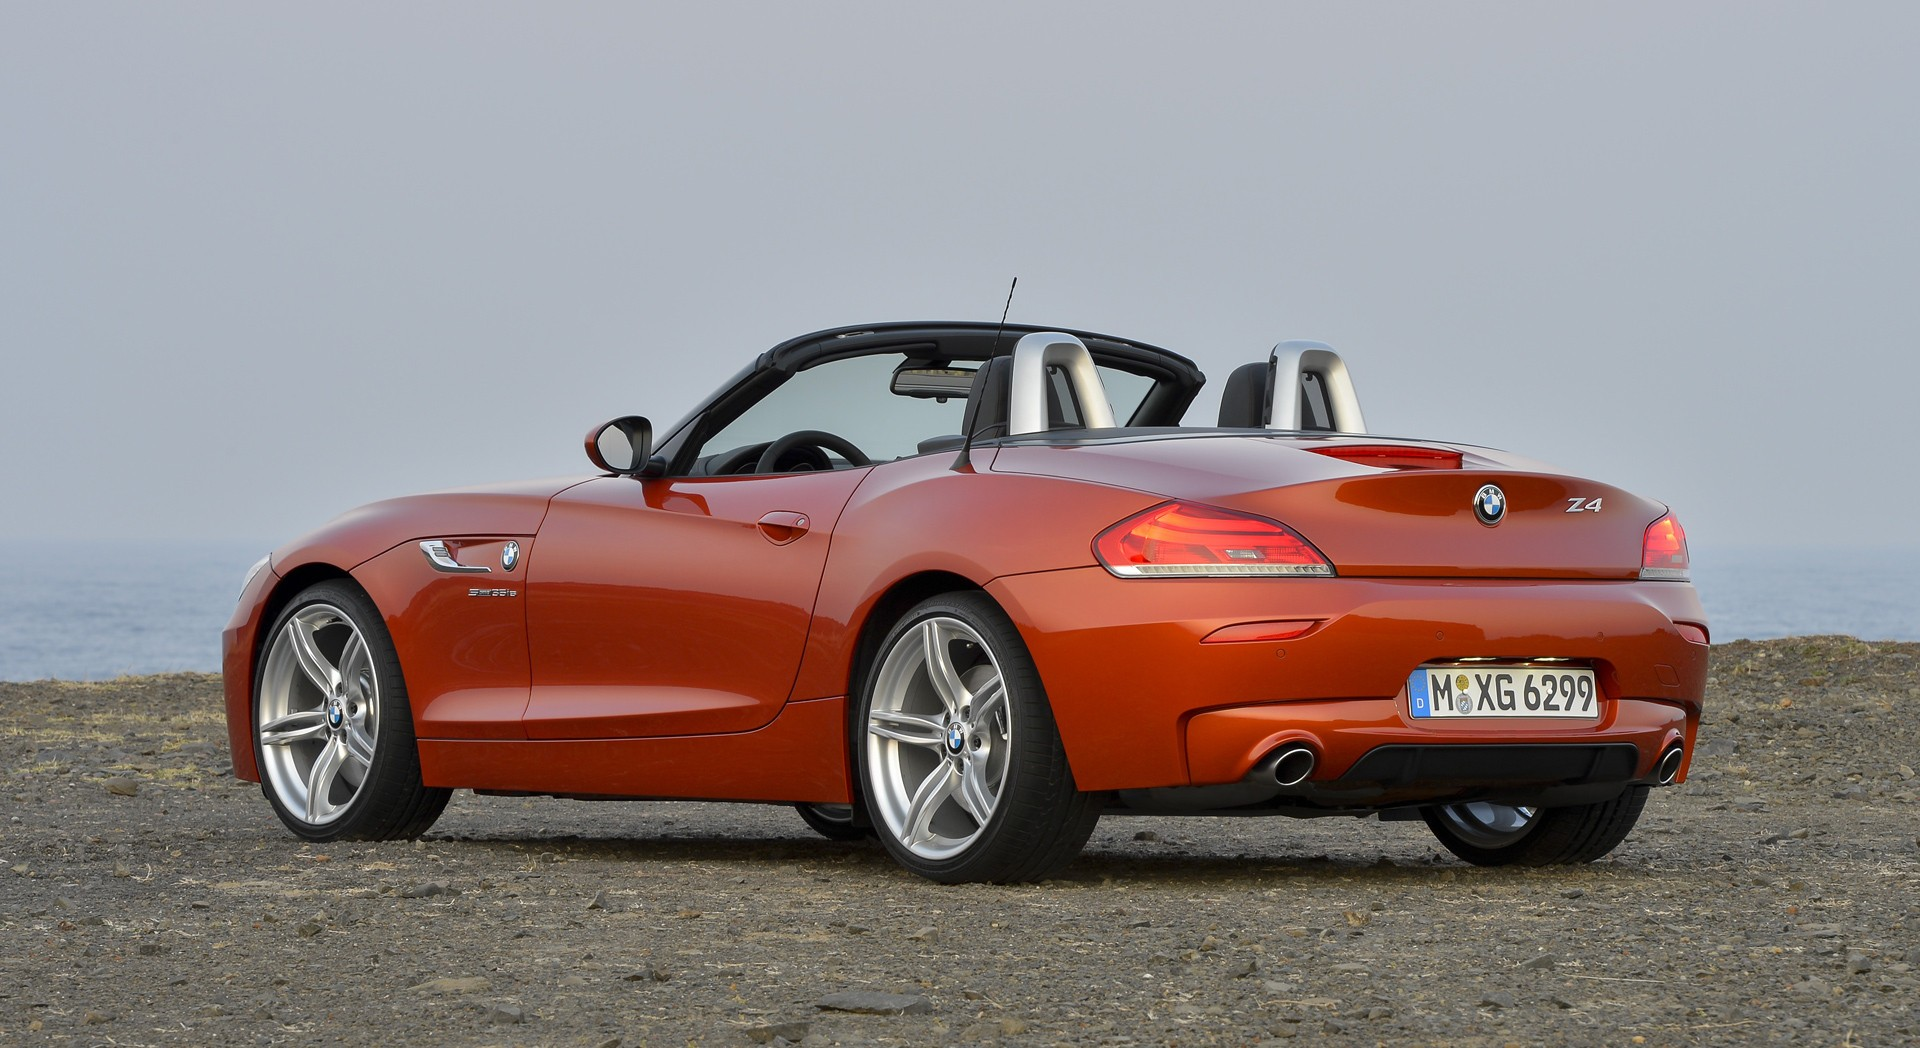 bmw z4 orange sweet ride